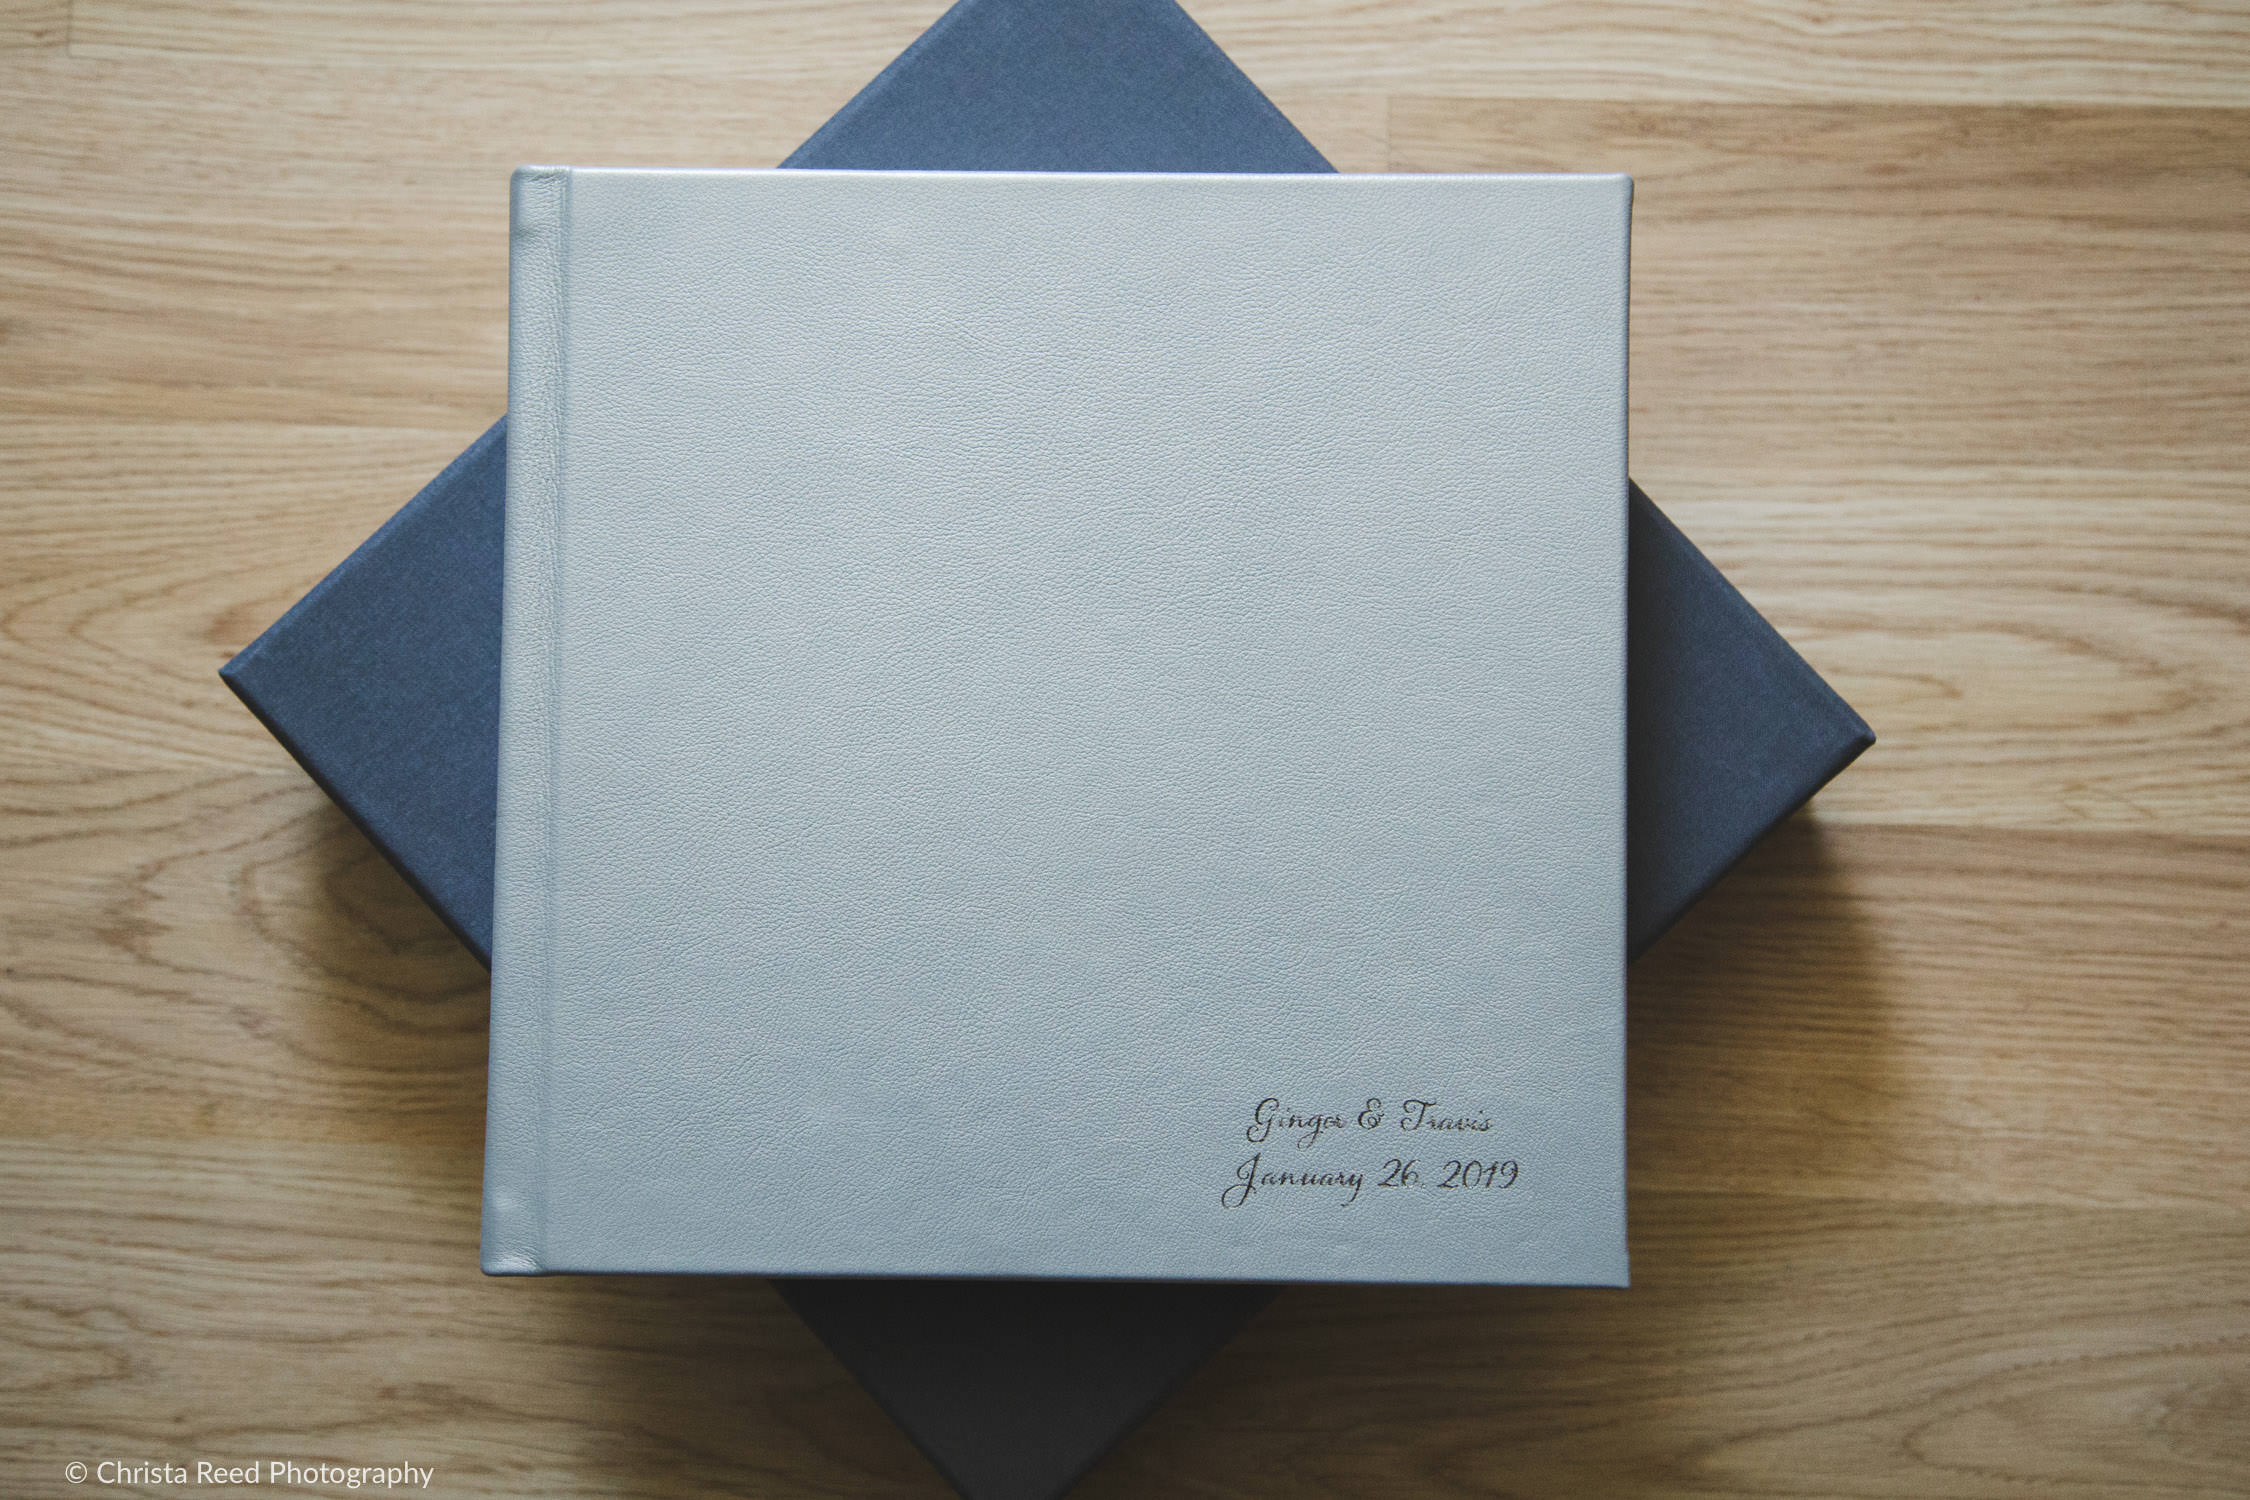 minneapolis minnesota wedding photographer makes leather albums